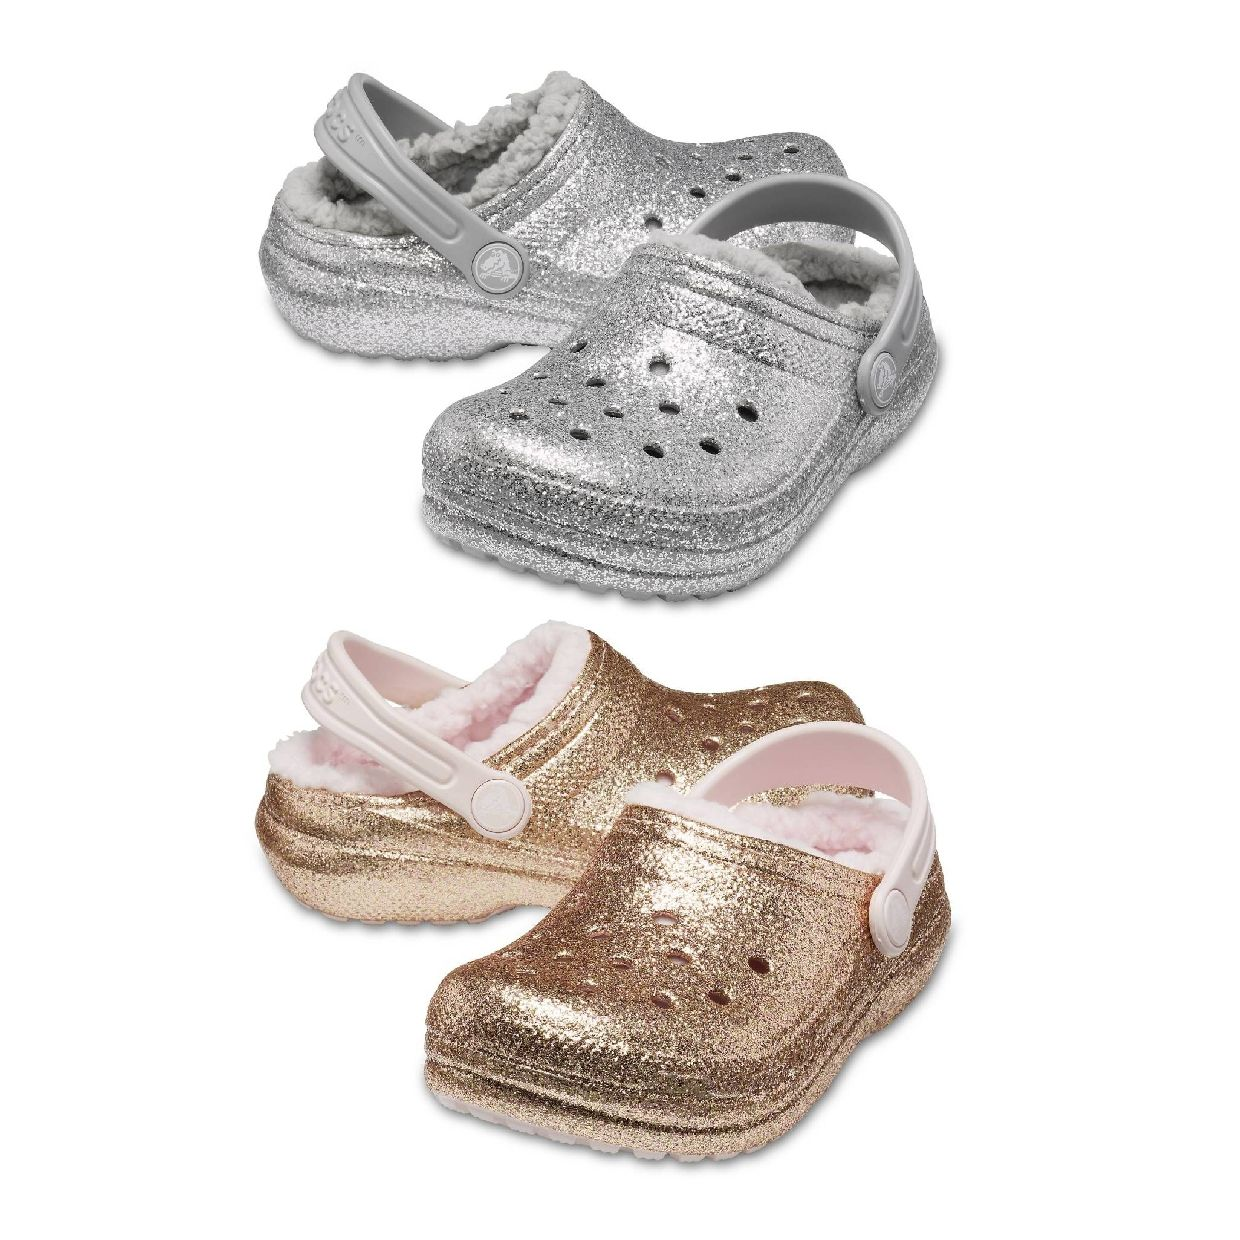 Crocs Classic Glitter Lined Clog Kids Clogs Synthetik Kinder Schuhe HW19